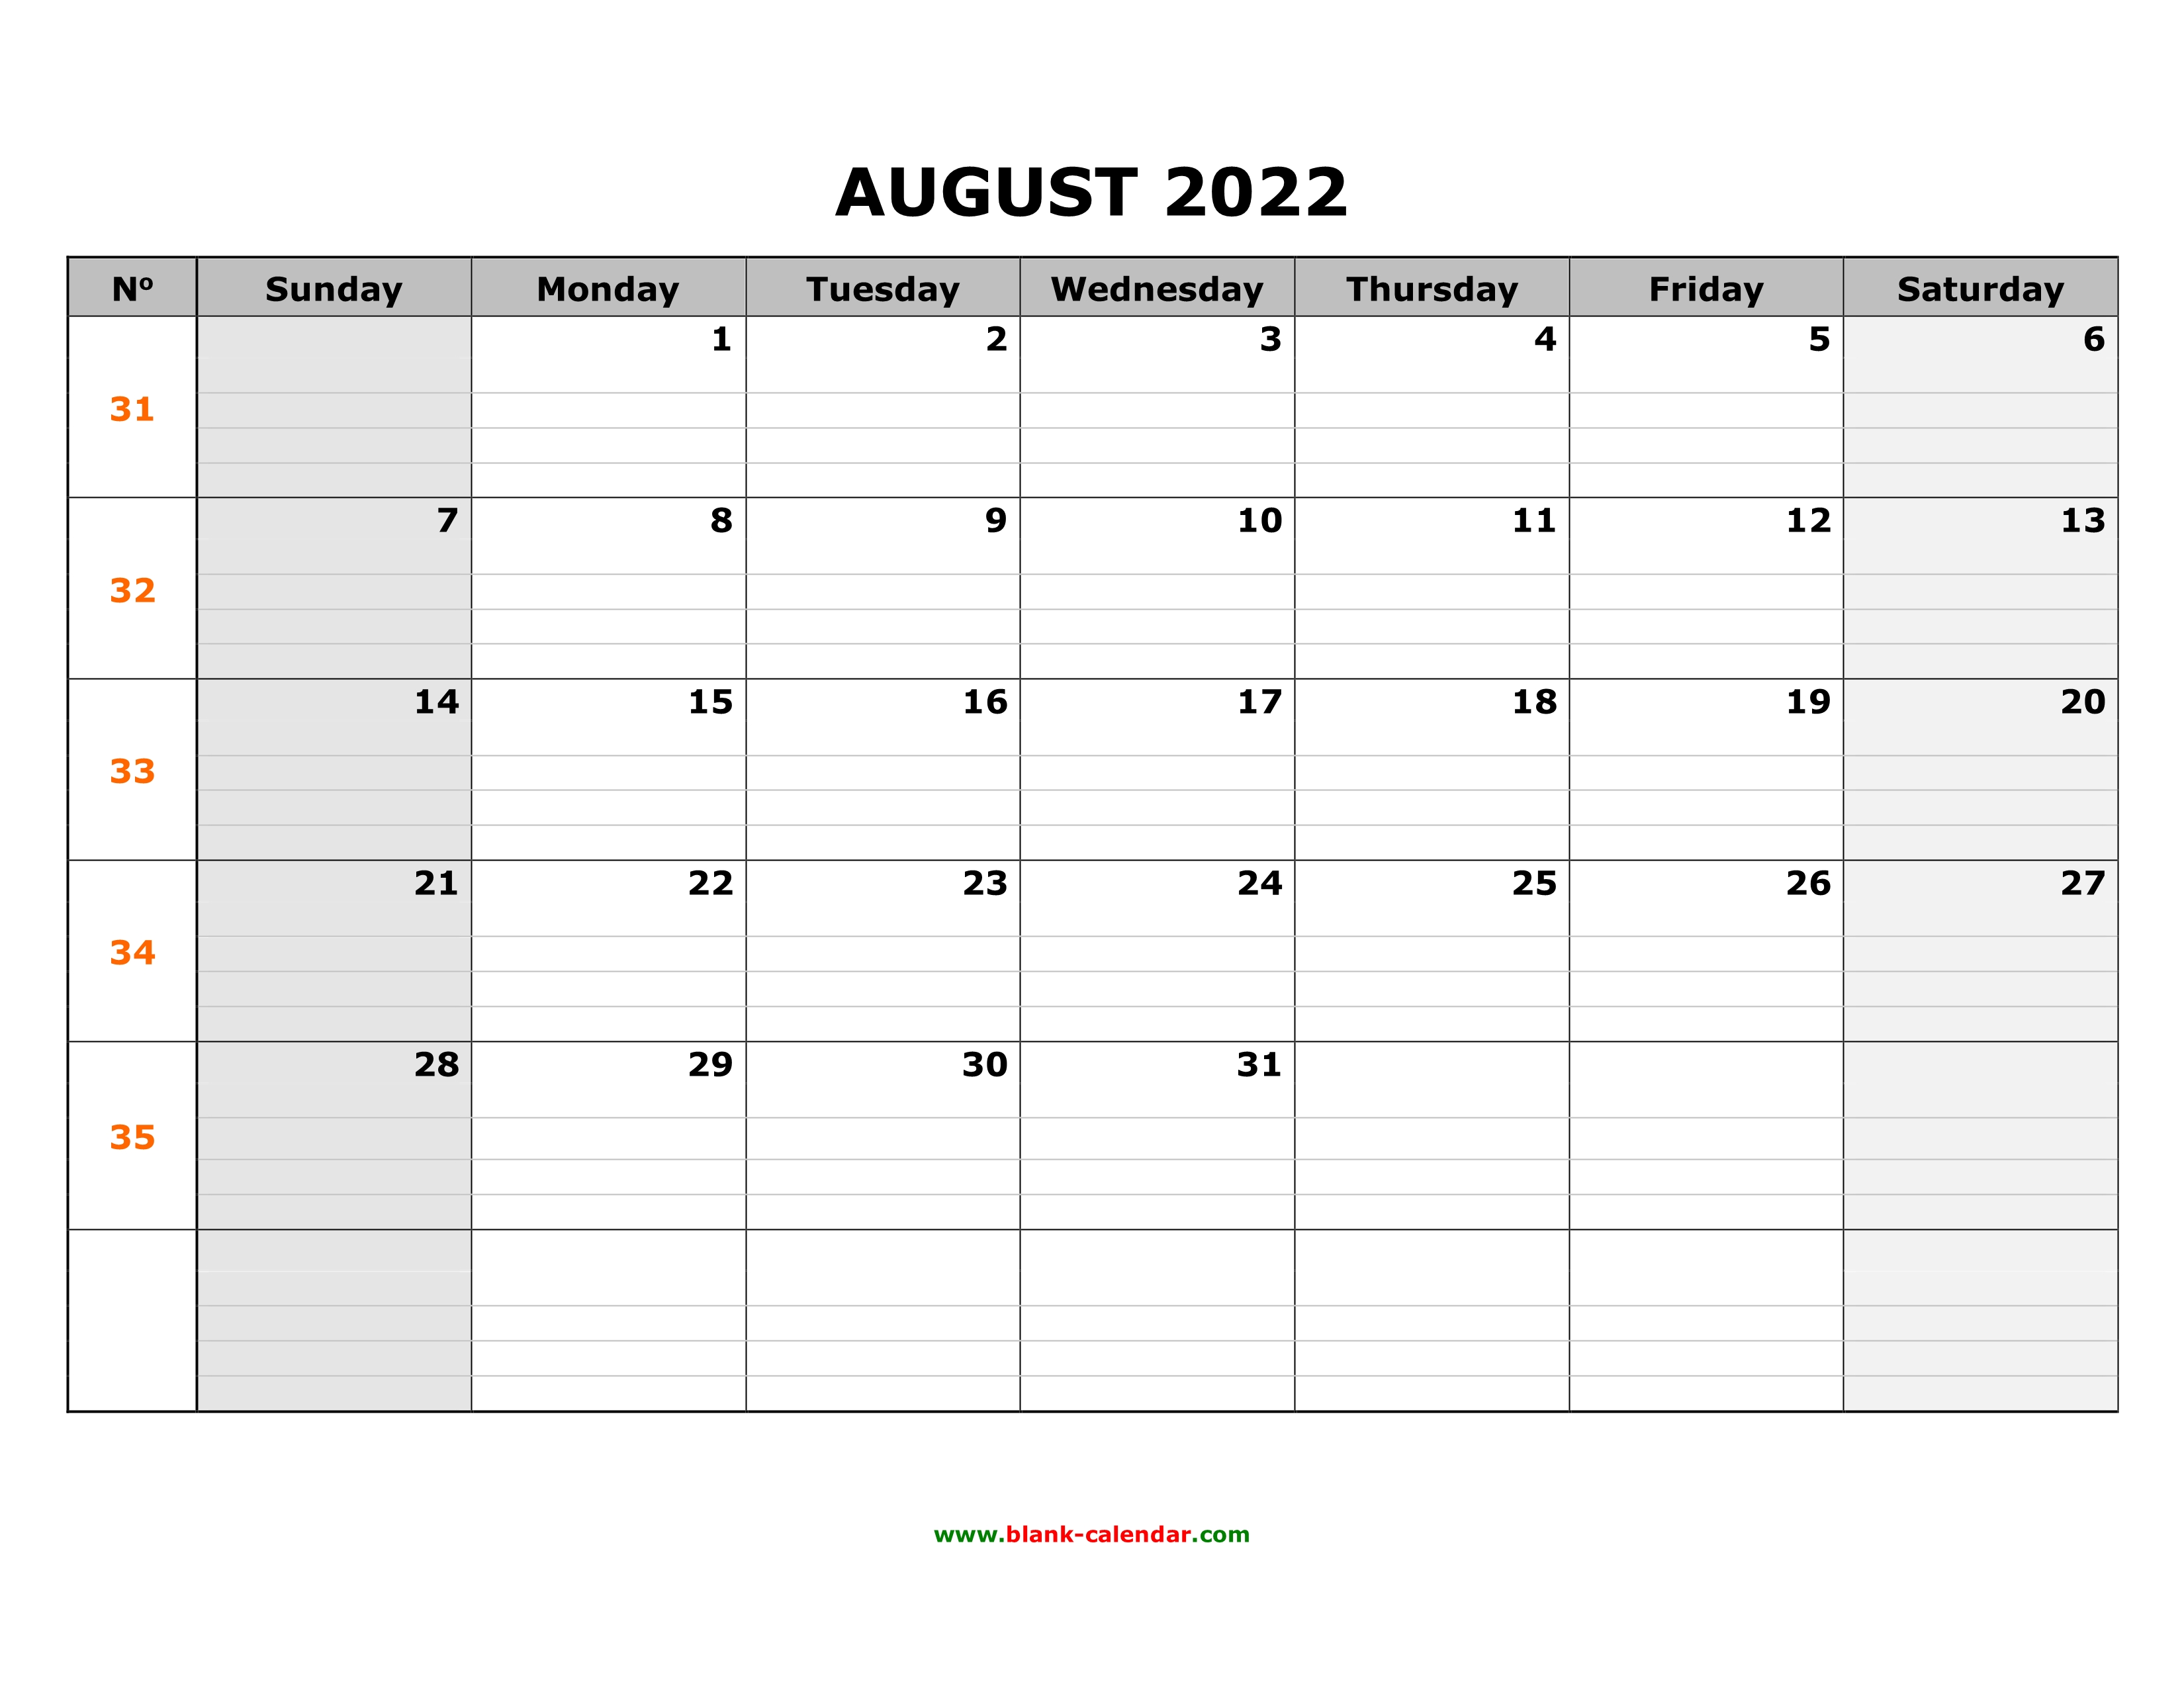 Blank August 2022 Calendar.Free Download Printable August 2022 Calendar Large Box Grid Space For Notes